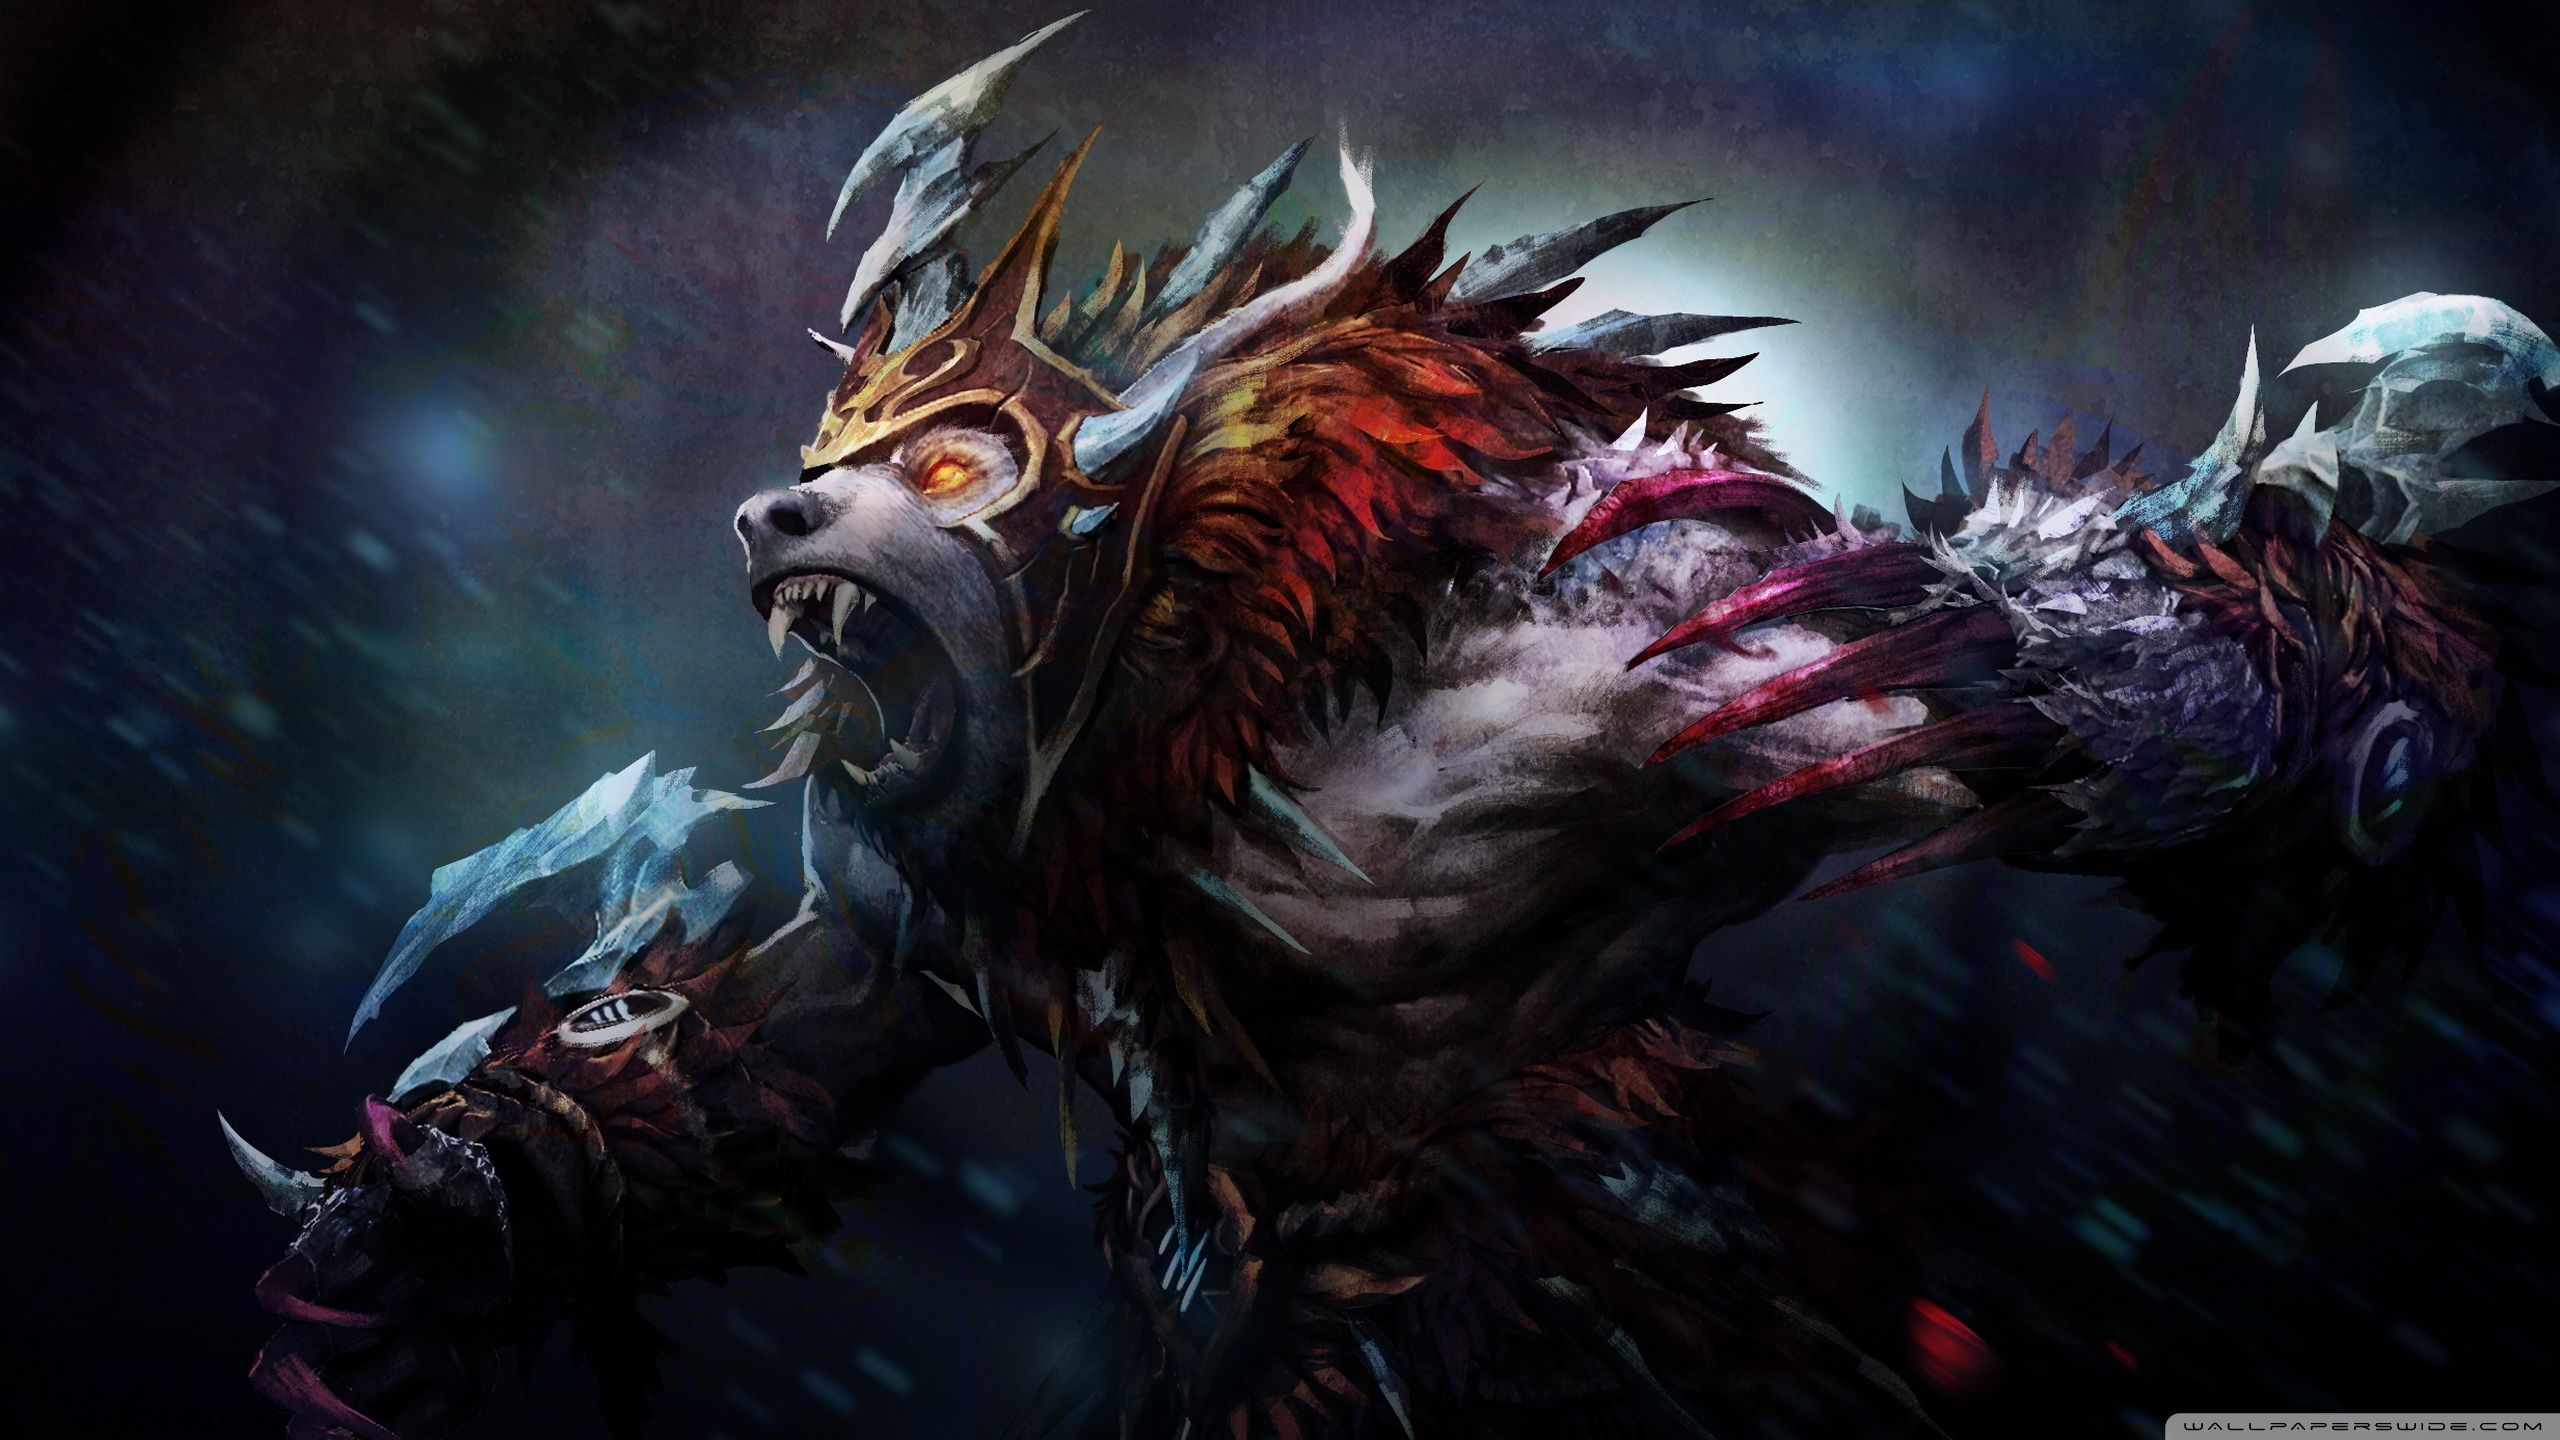 Dota storm spirit samsung corby 2 theme samsung corby 2 themes desktop wallpaper ursa dota cryogenic embrace set hd for pc mac laptop tablet mobile phone voltagebd Images